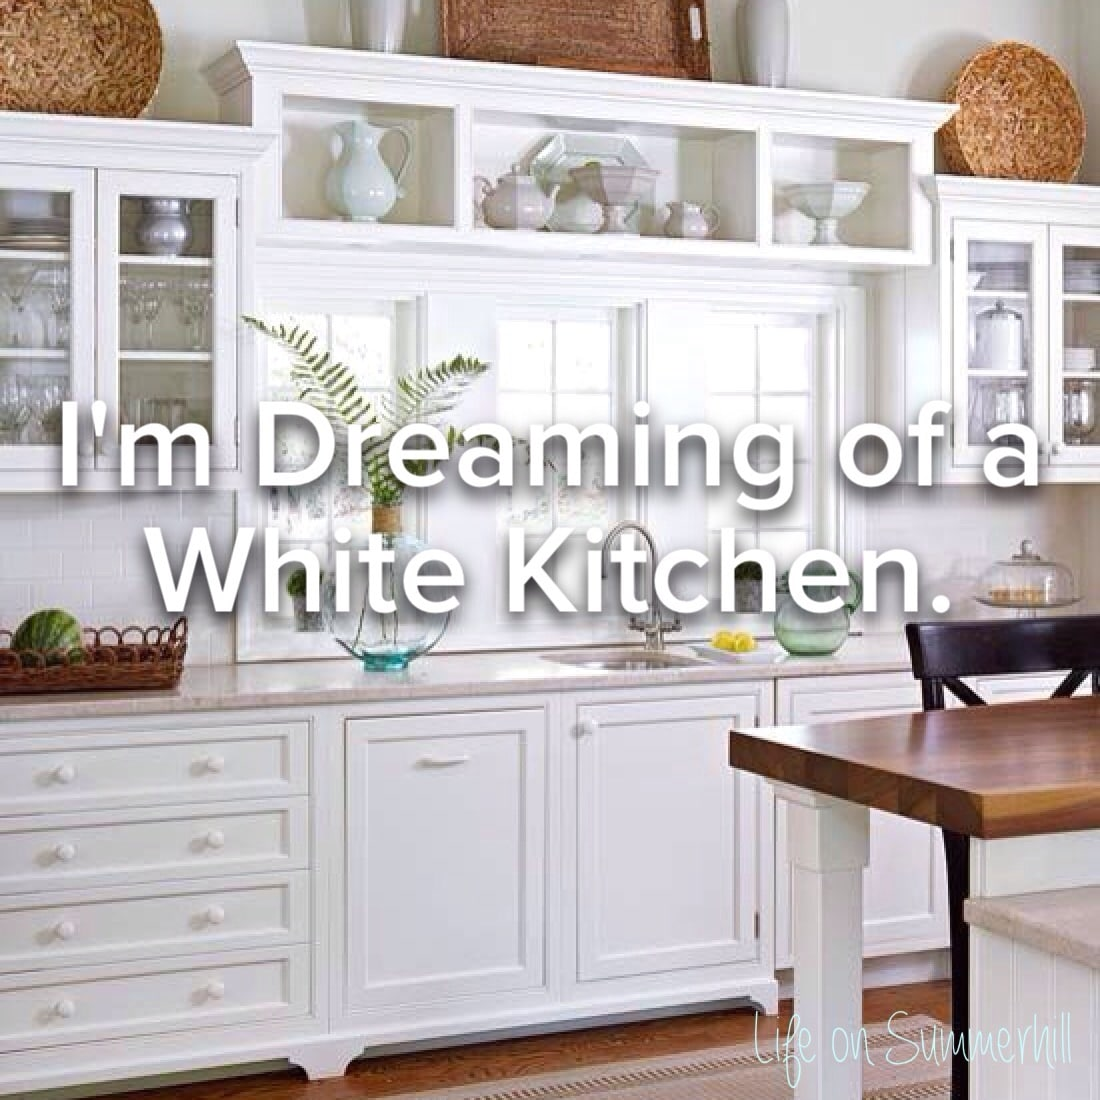 I'M DREAMING OF A WHITE KITCHEN!